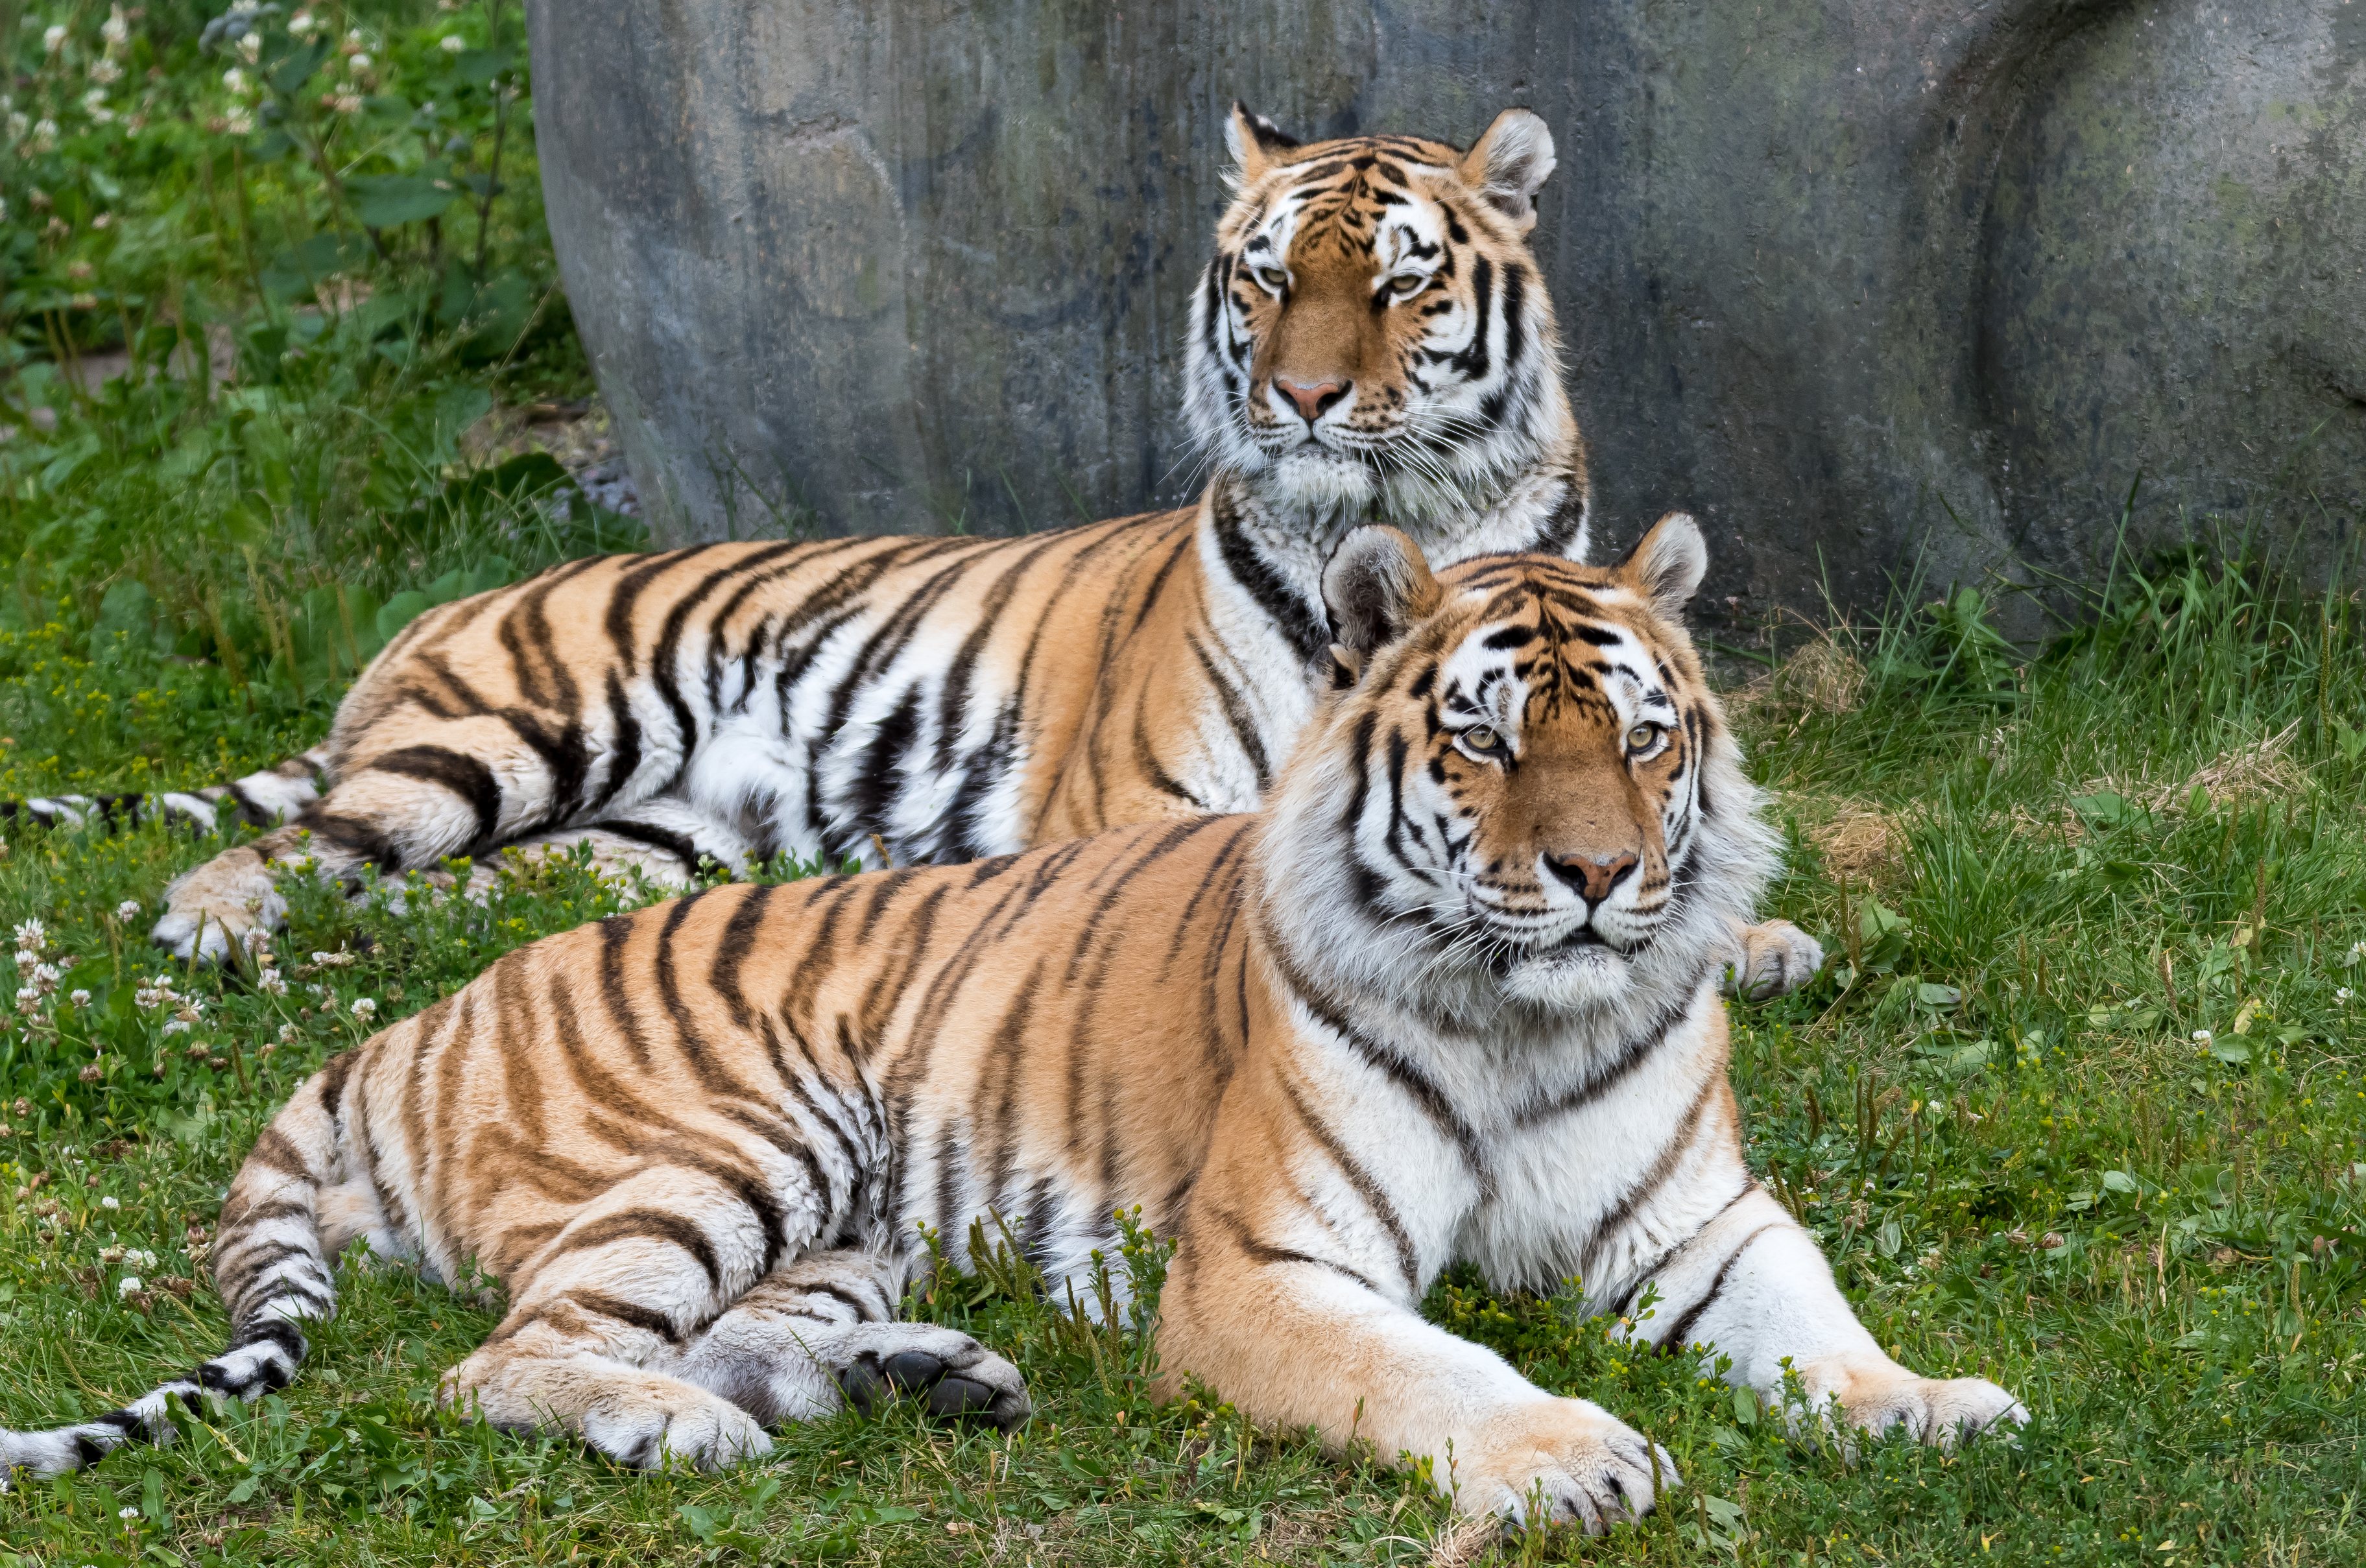 98397 download wallpaper Animals, Tiger, Big Cat, Predator, Tigers screensavers and pictures for free